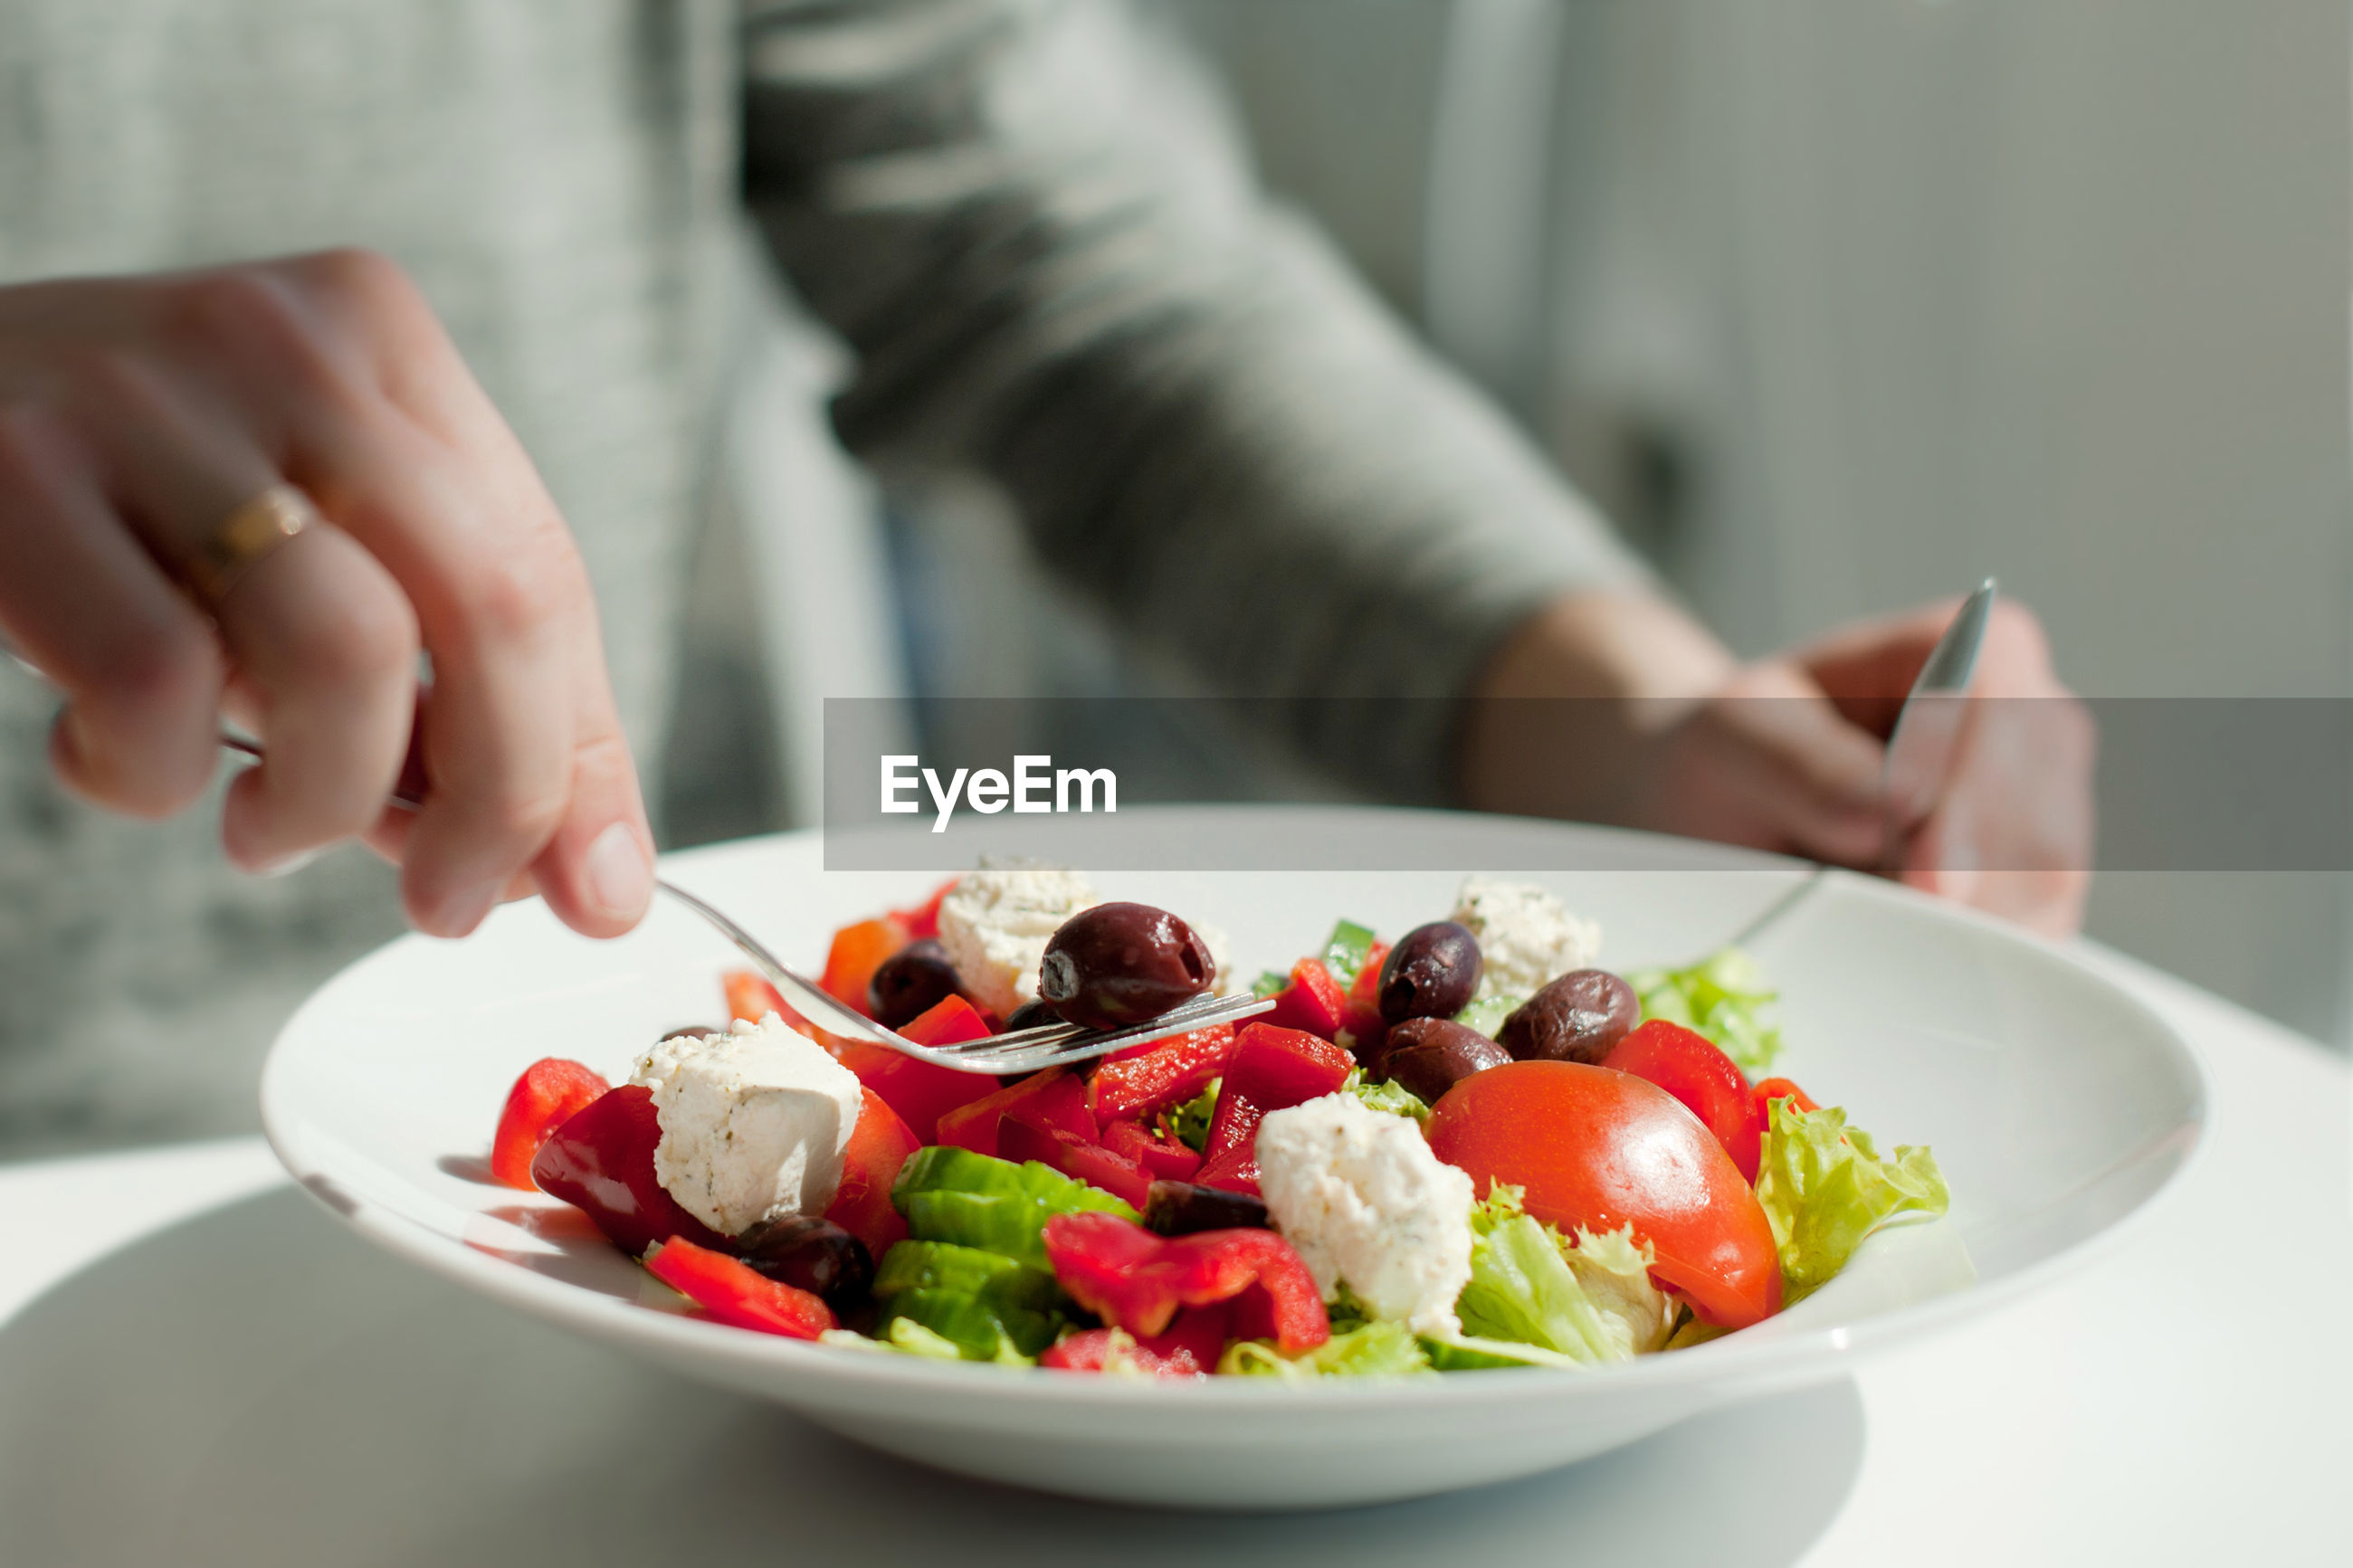 Close-up of person having food at table